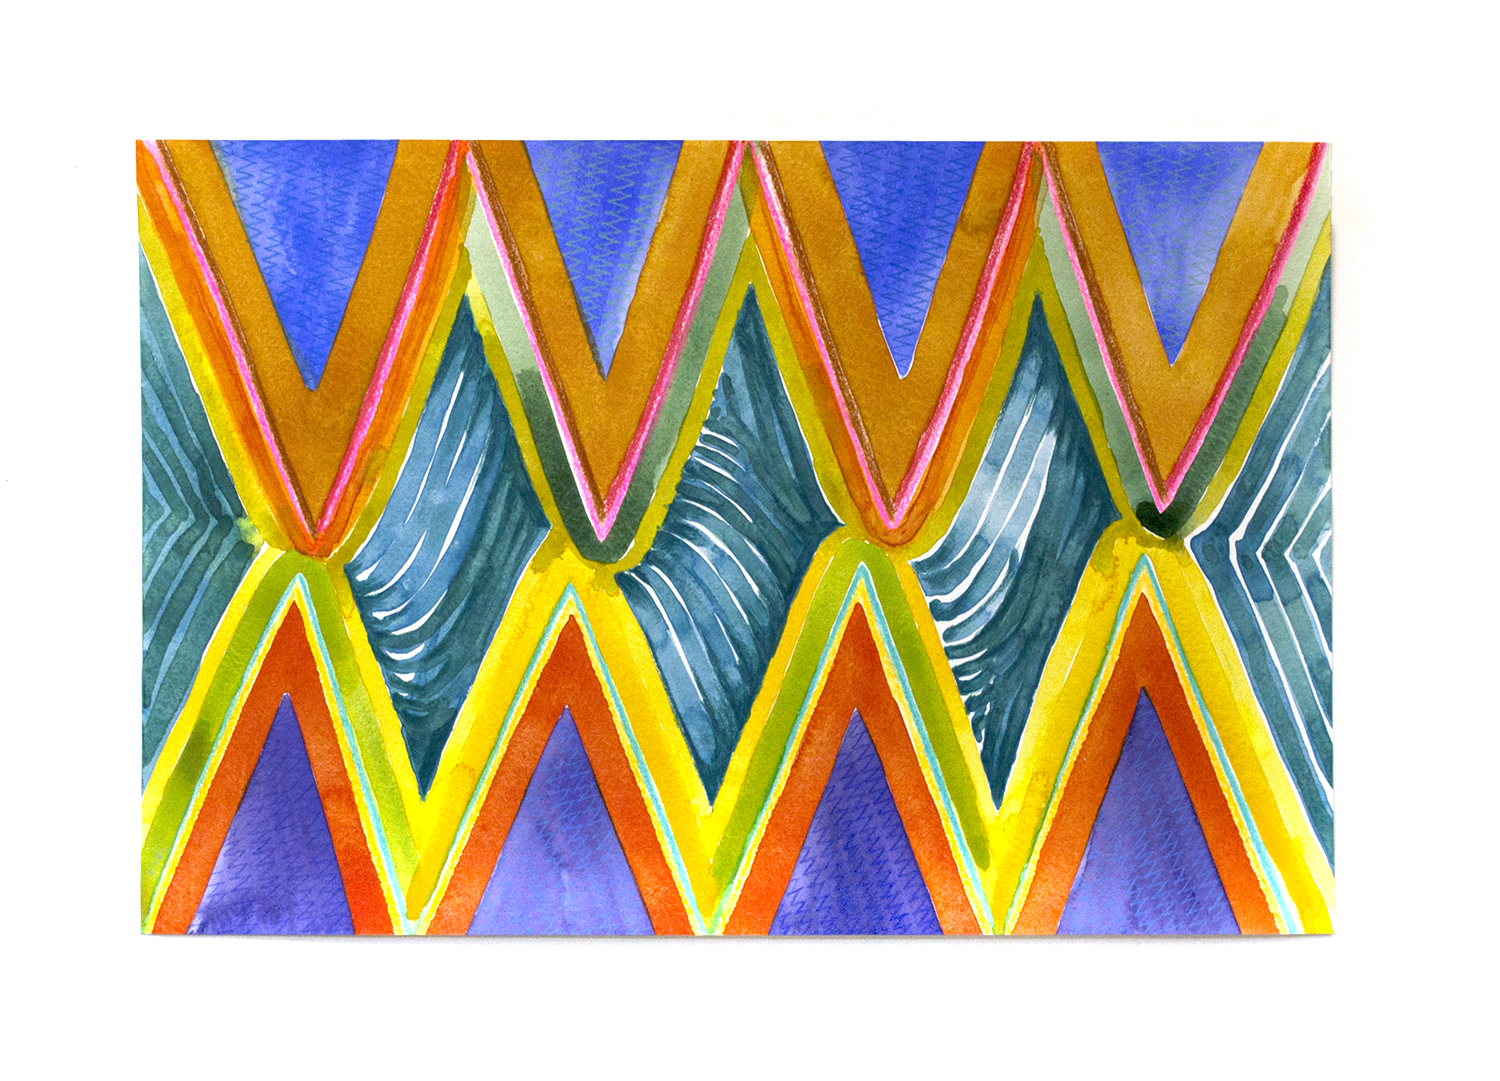 "Green Waves, 2016, Charlene Vickers (Anishnabe), Watercolour and pencil crayon on paper, 21"" x 14"", $1,000 unframed"